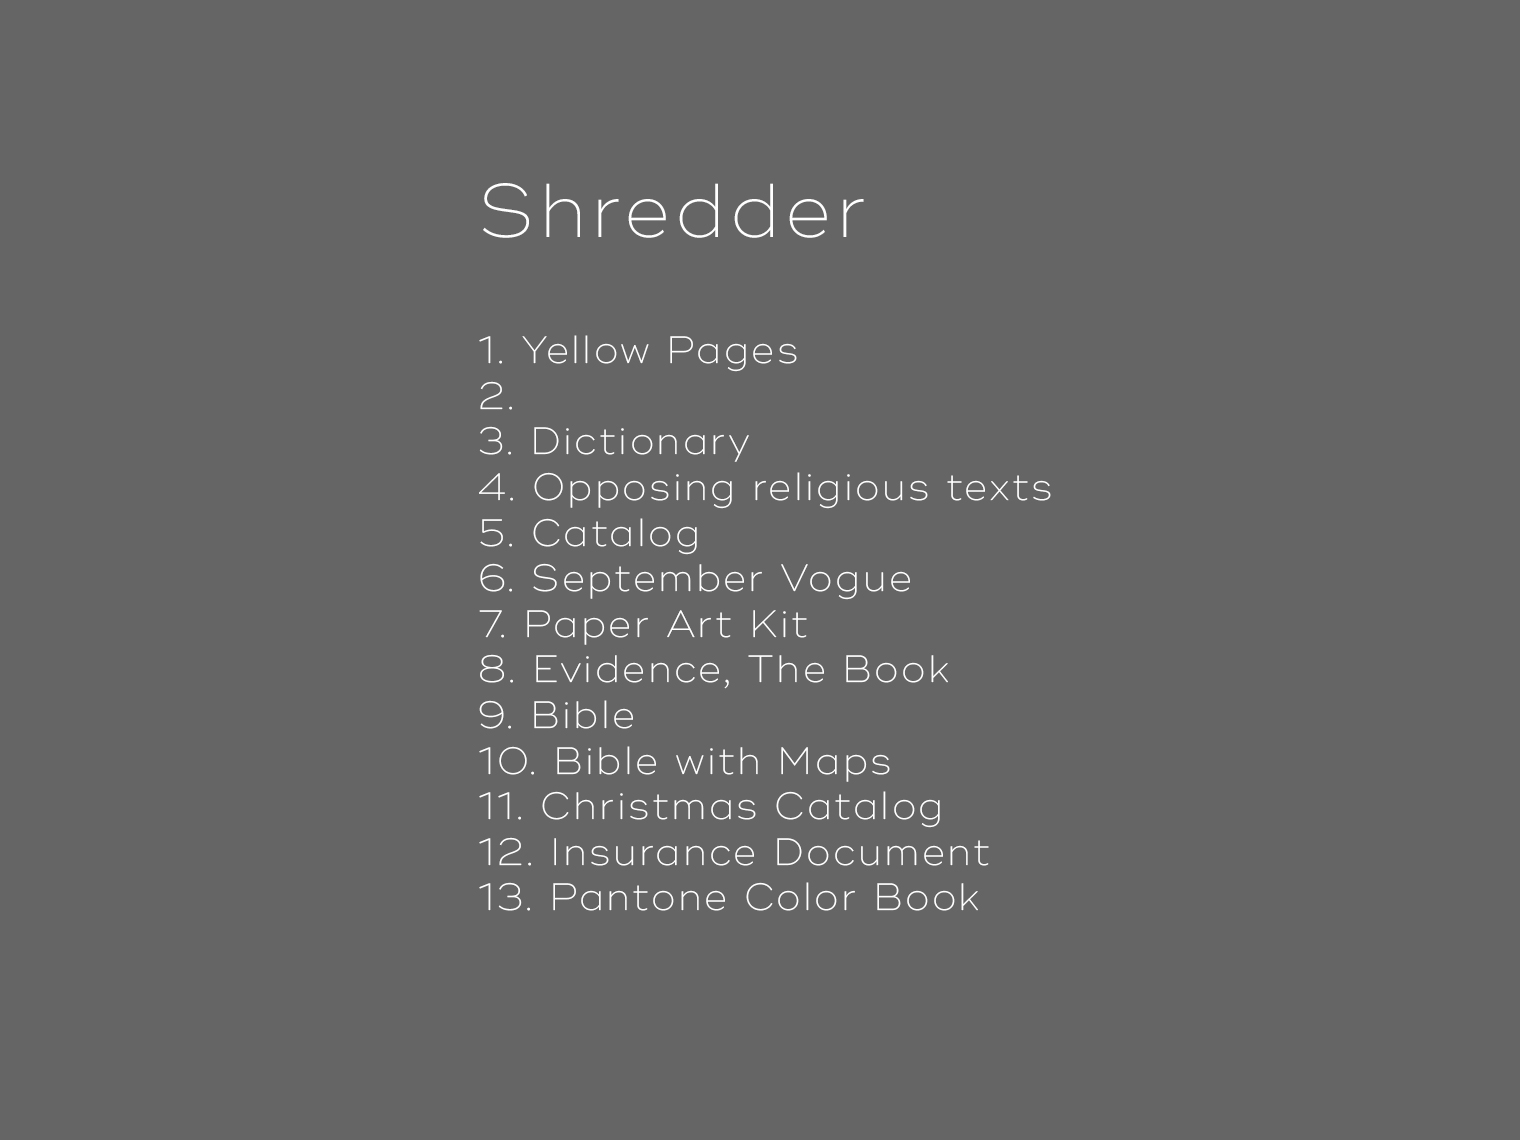 Shredder-Content-page